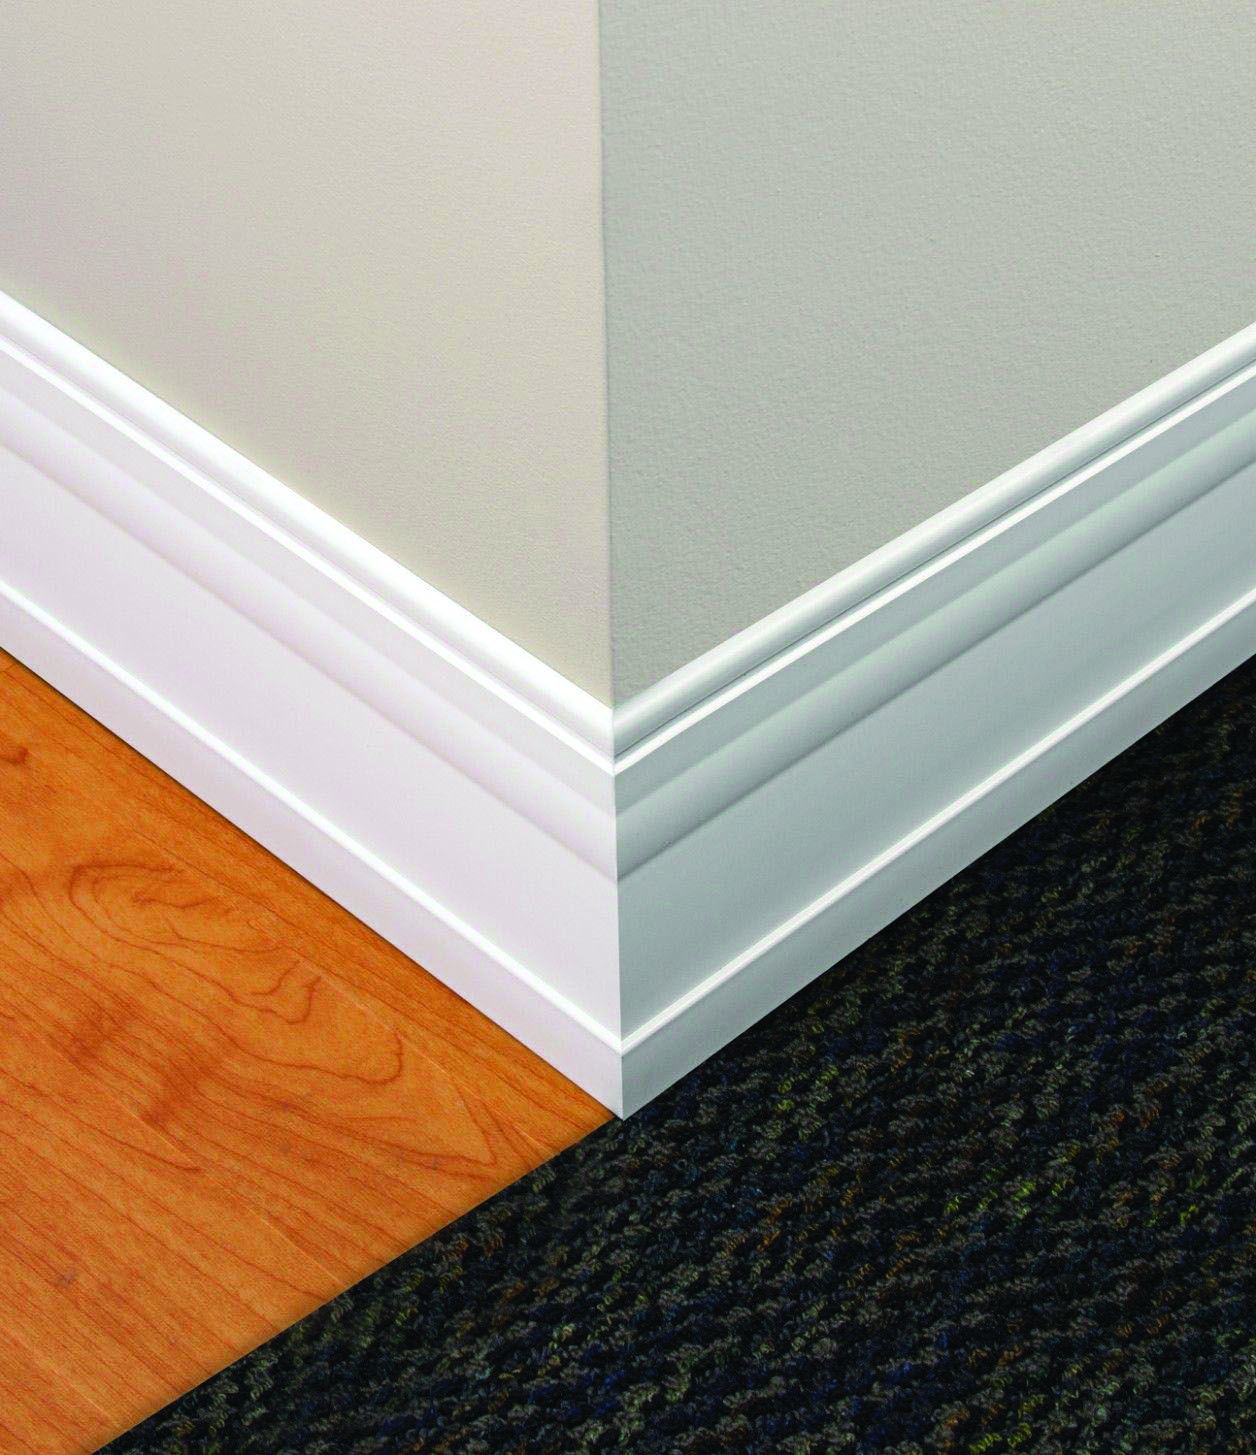 Baseboard Styles With Images Baseboard Styles Baseboard Trim